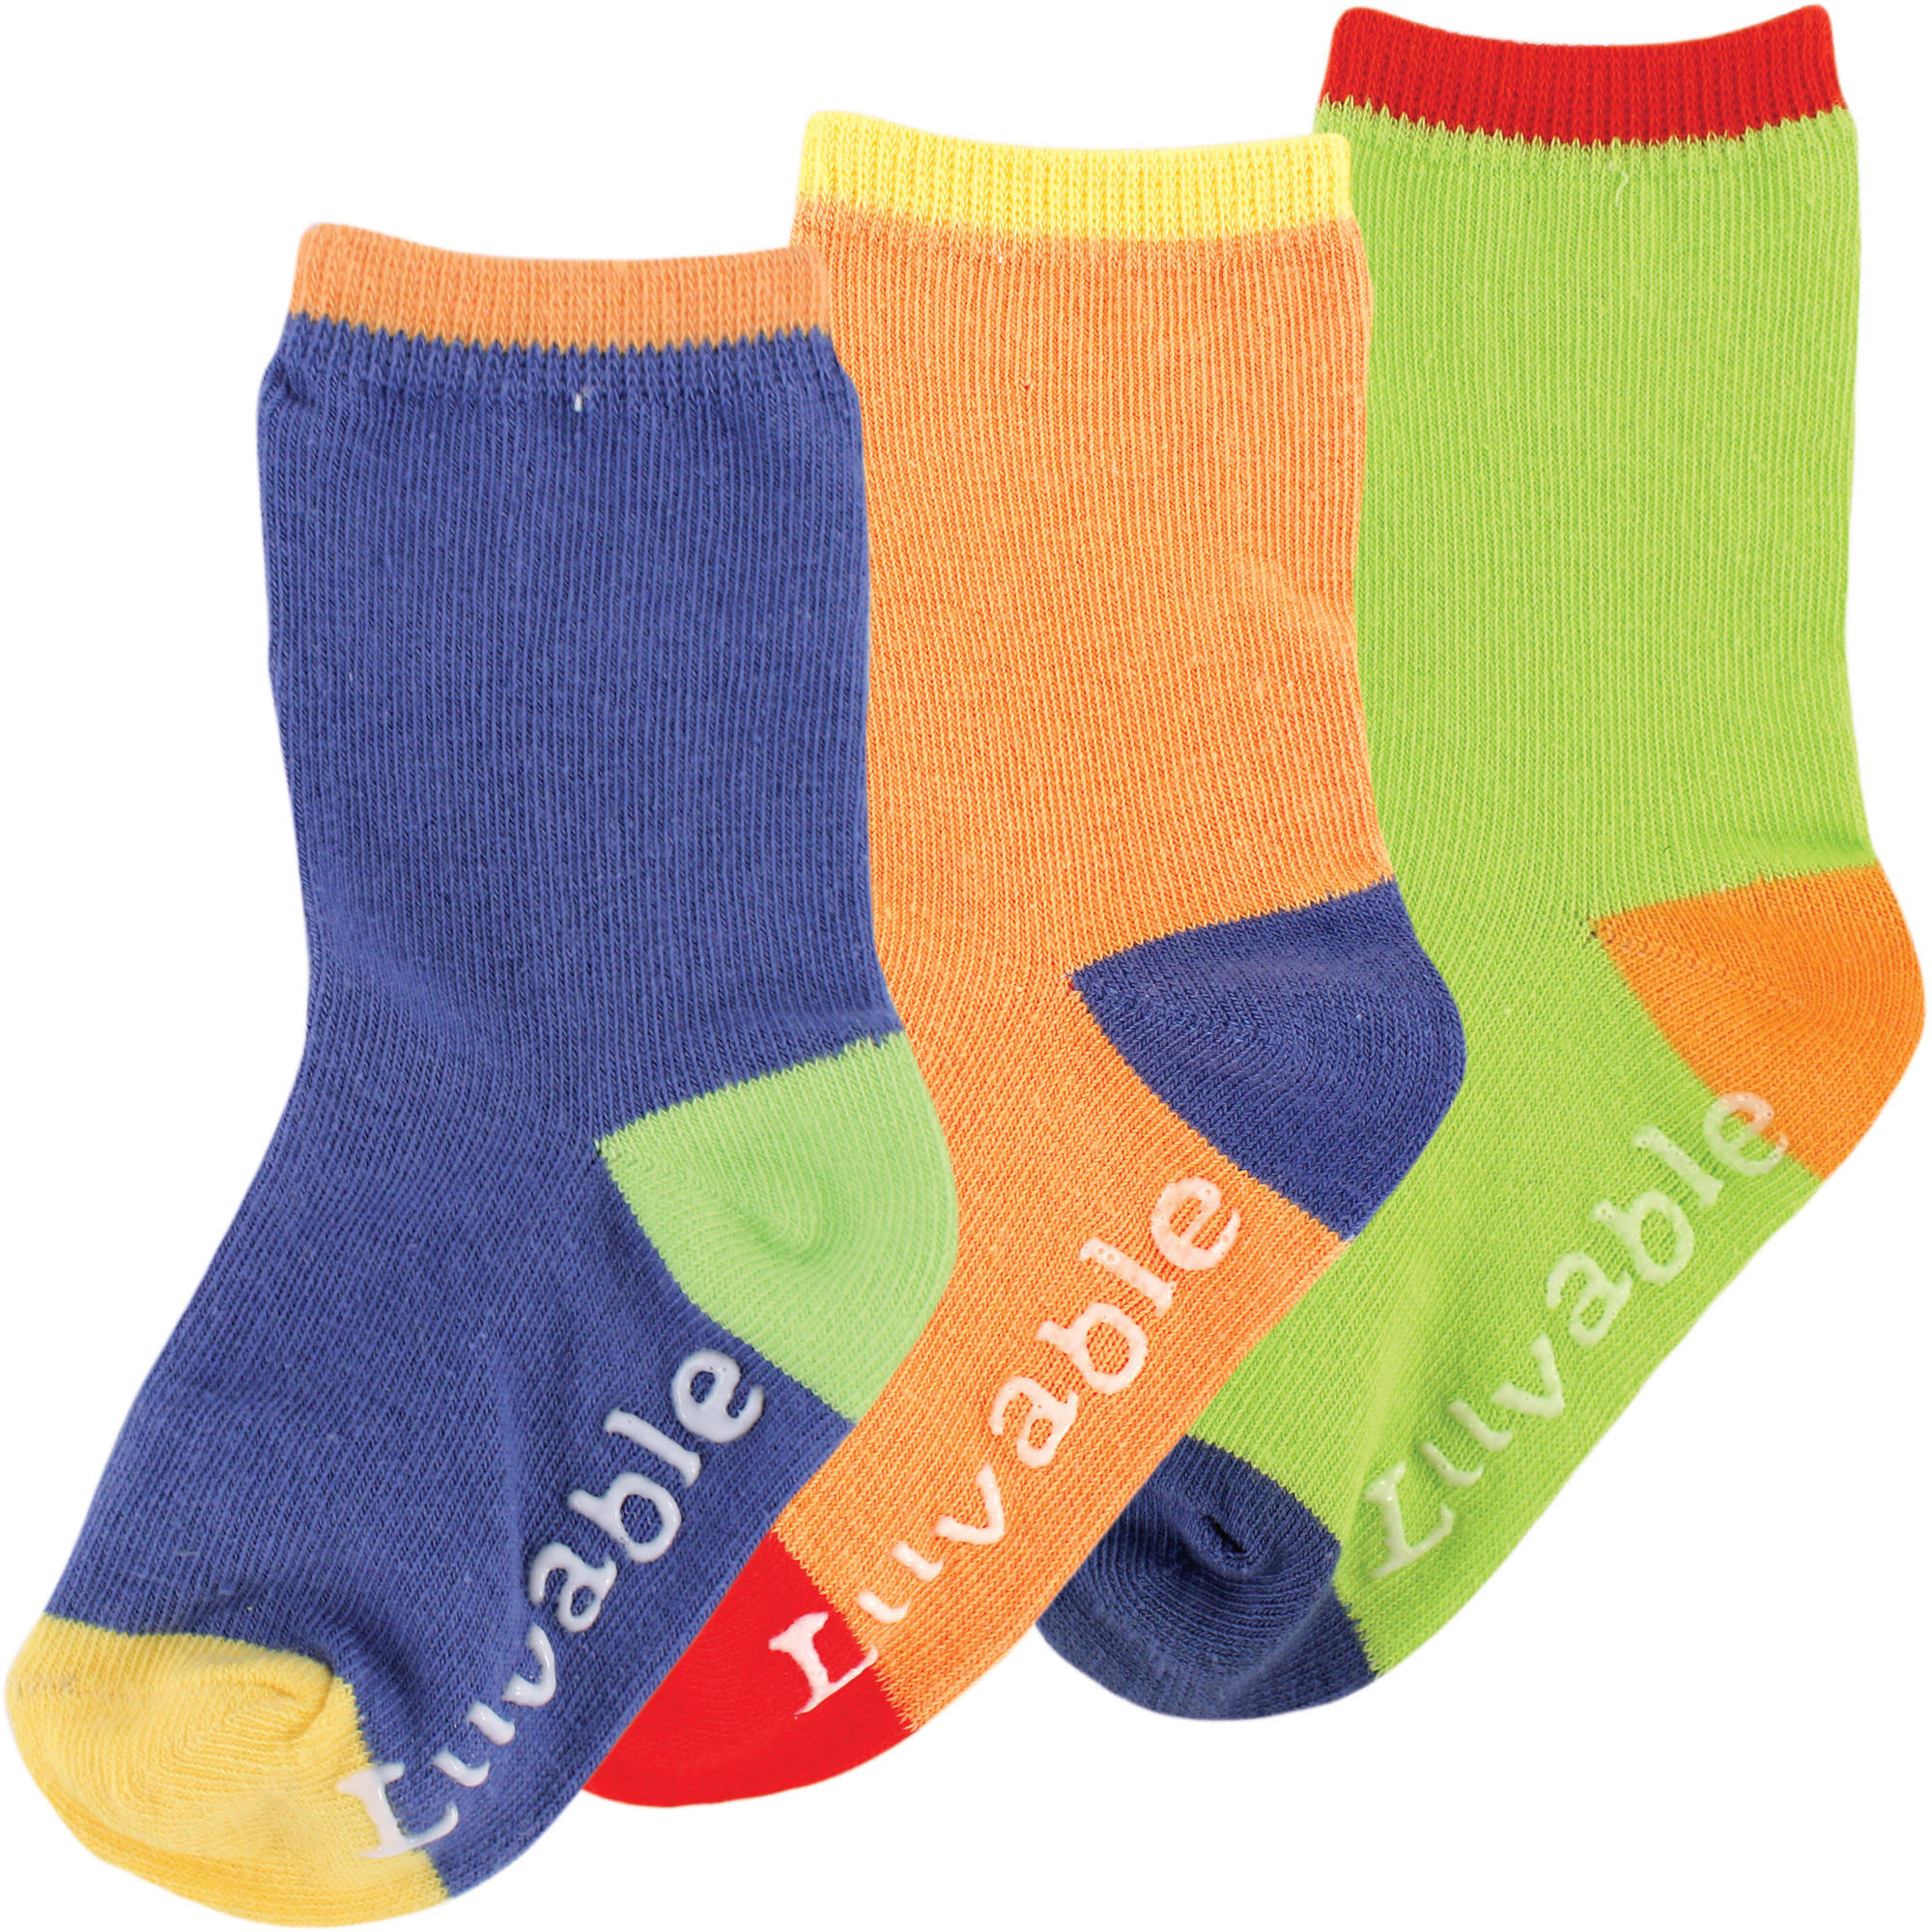 Luvable Friends Newborn Baby Boys Kickproof Non-Skid Socks 3-Pack